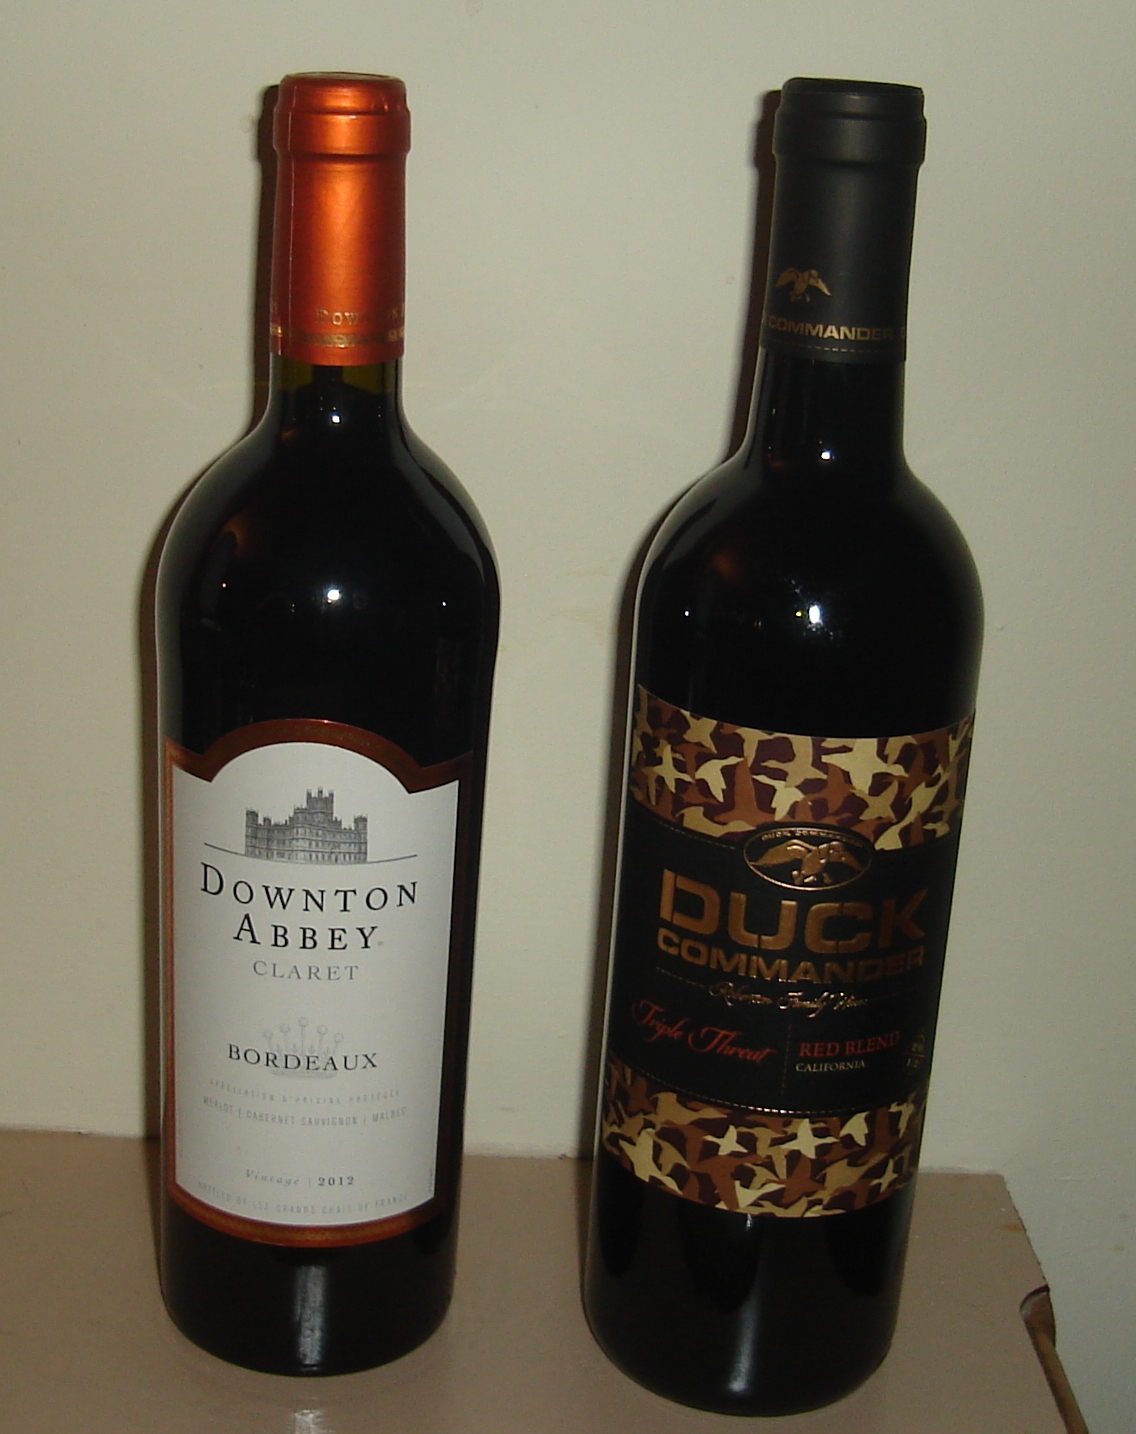 Downton Dynasty and Duck Abbey wines